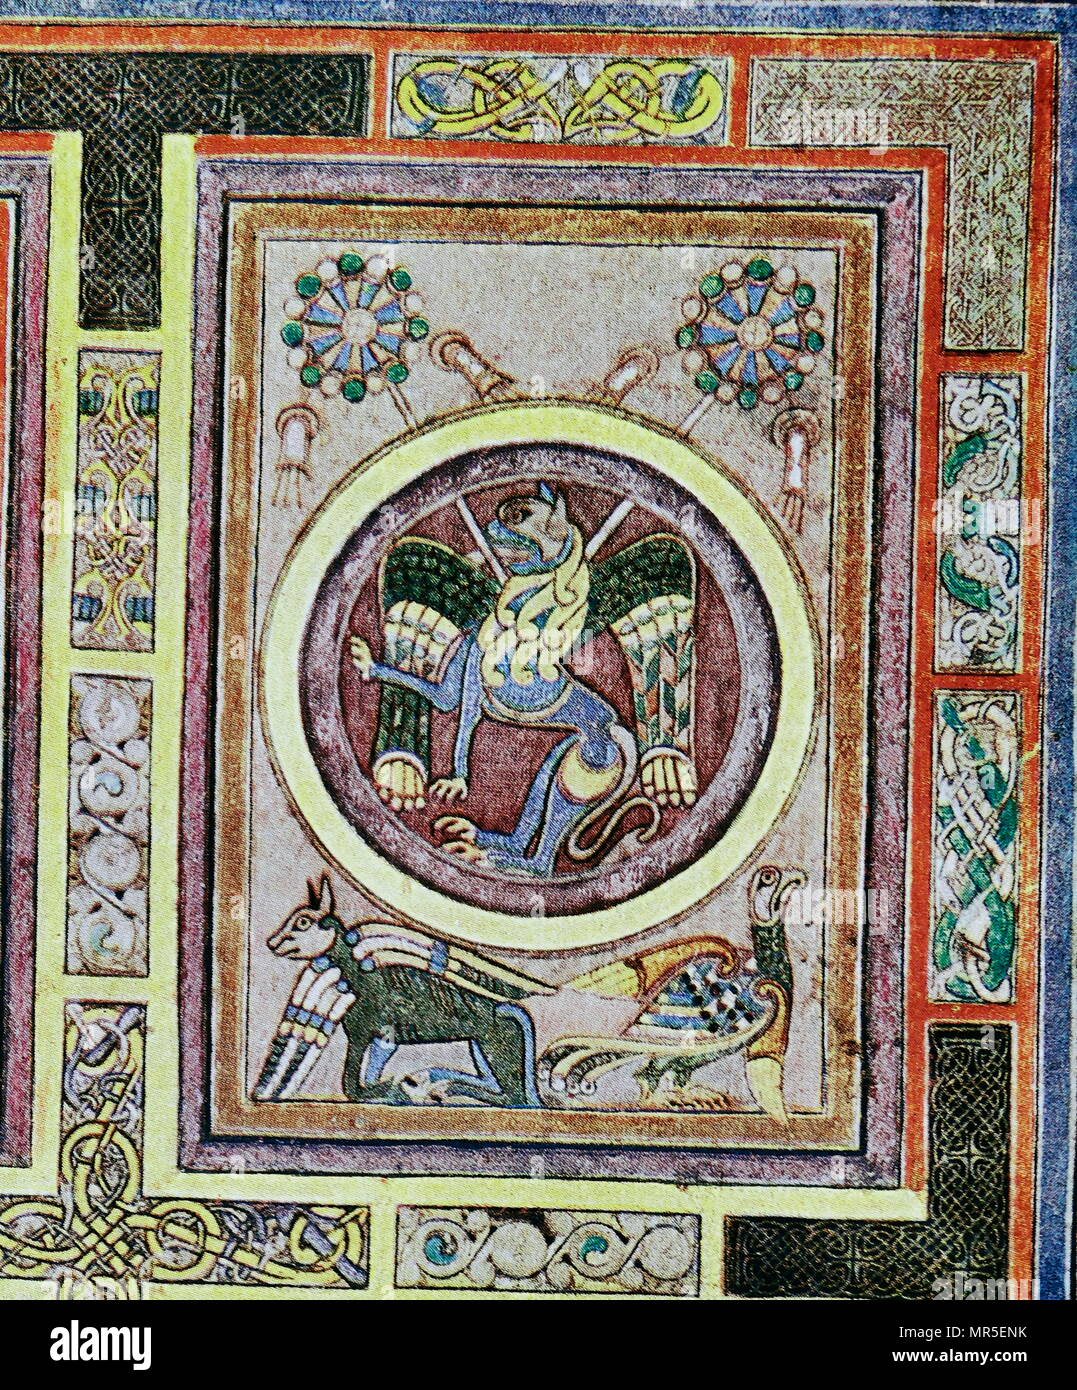 Evangelical Symbol Fol 129 V From The Book Of Kells The Book Of